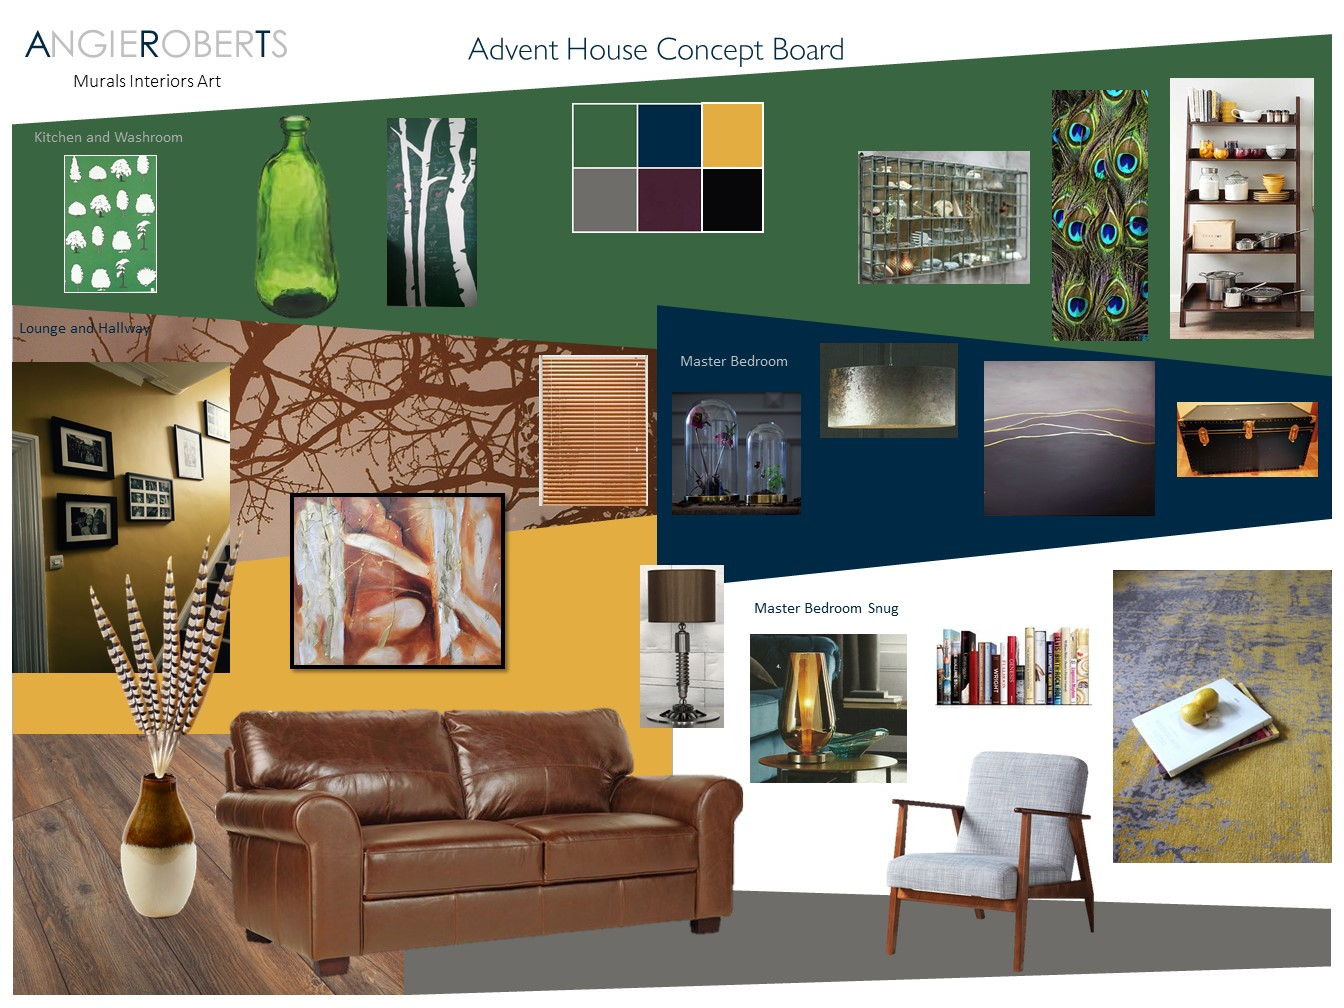 Advent House Concept Board Ocotber 2017